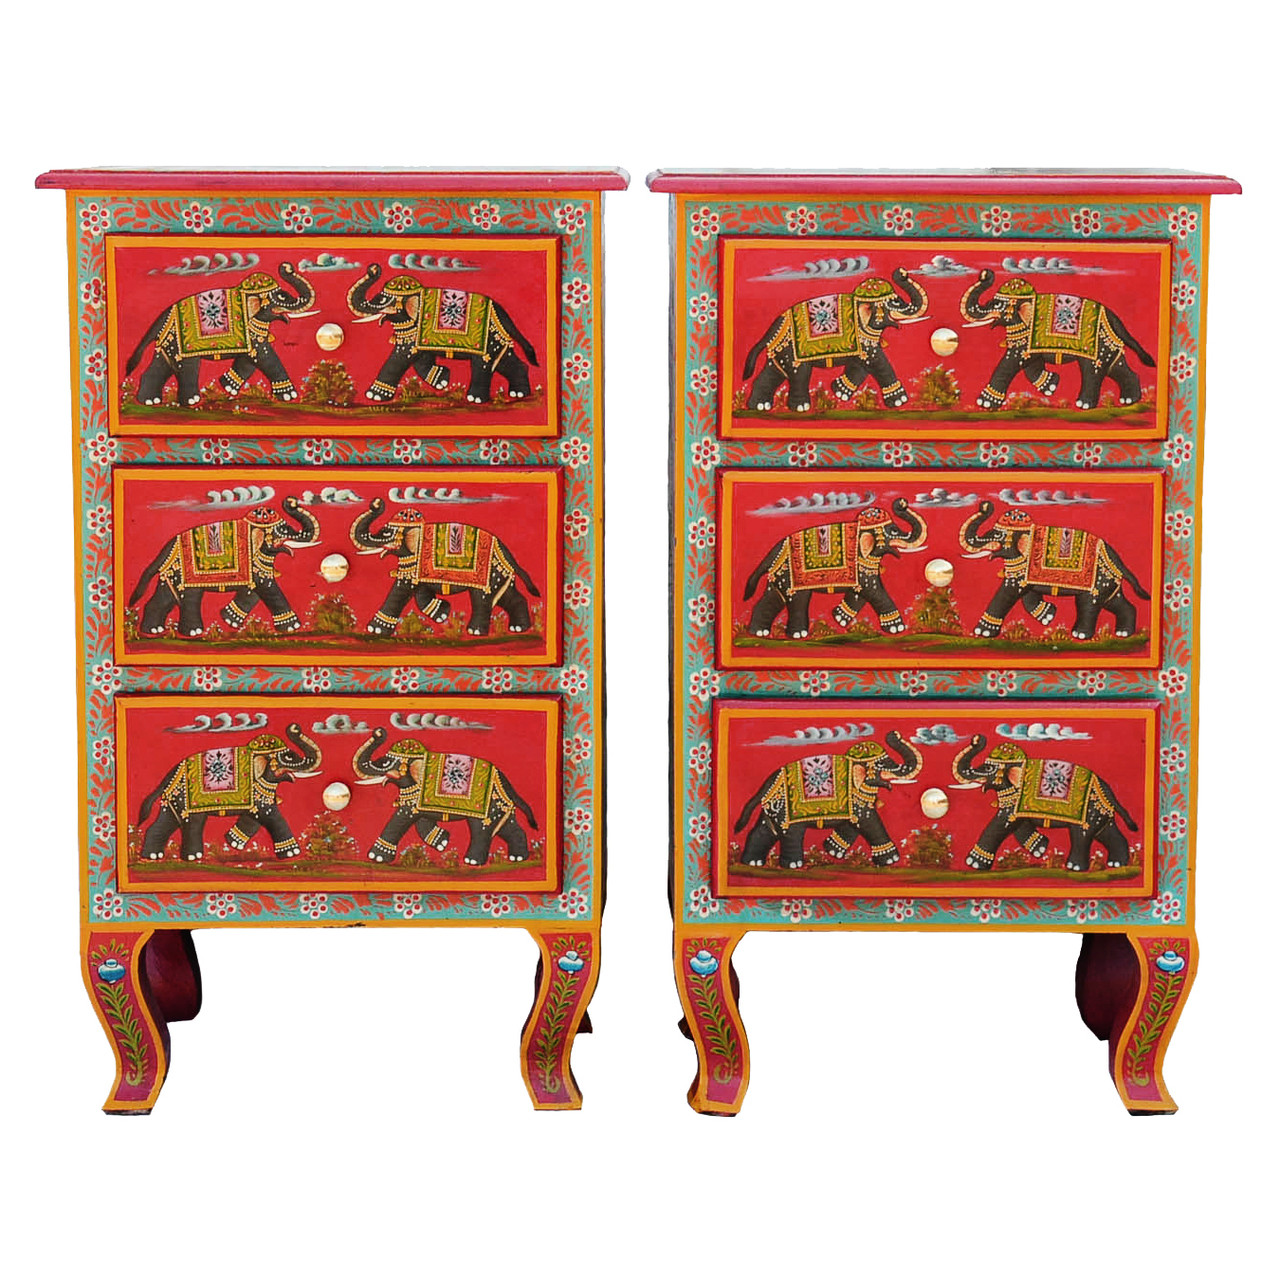 Set of 2 Bedside Cabinets 3 Drawer Red Elephant Design  sc 1 st  Present Company : set of bedside tables - pezcame.com